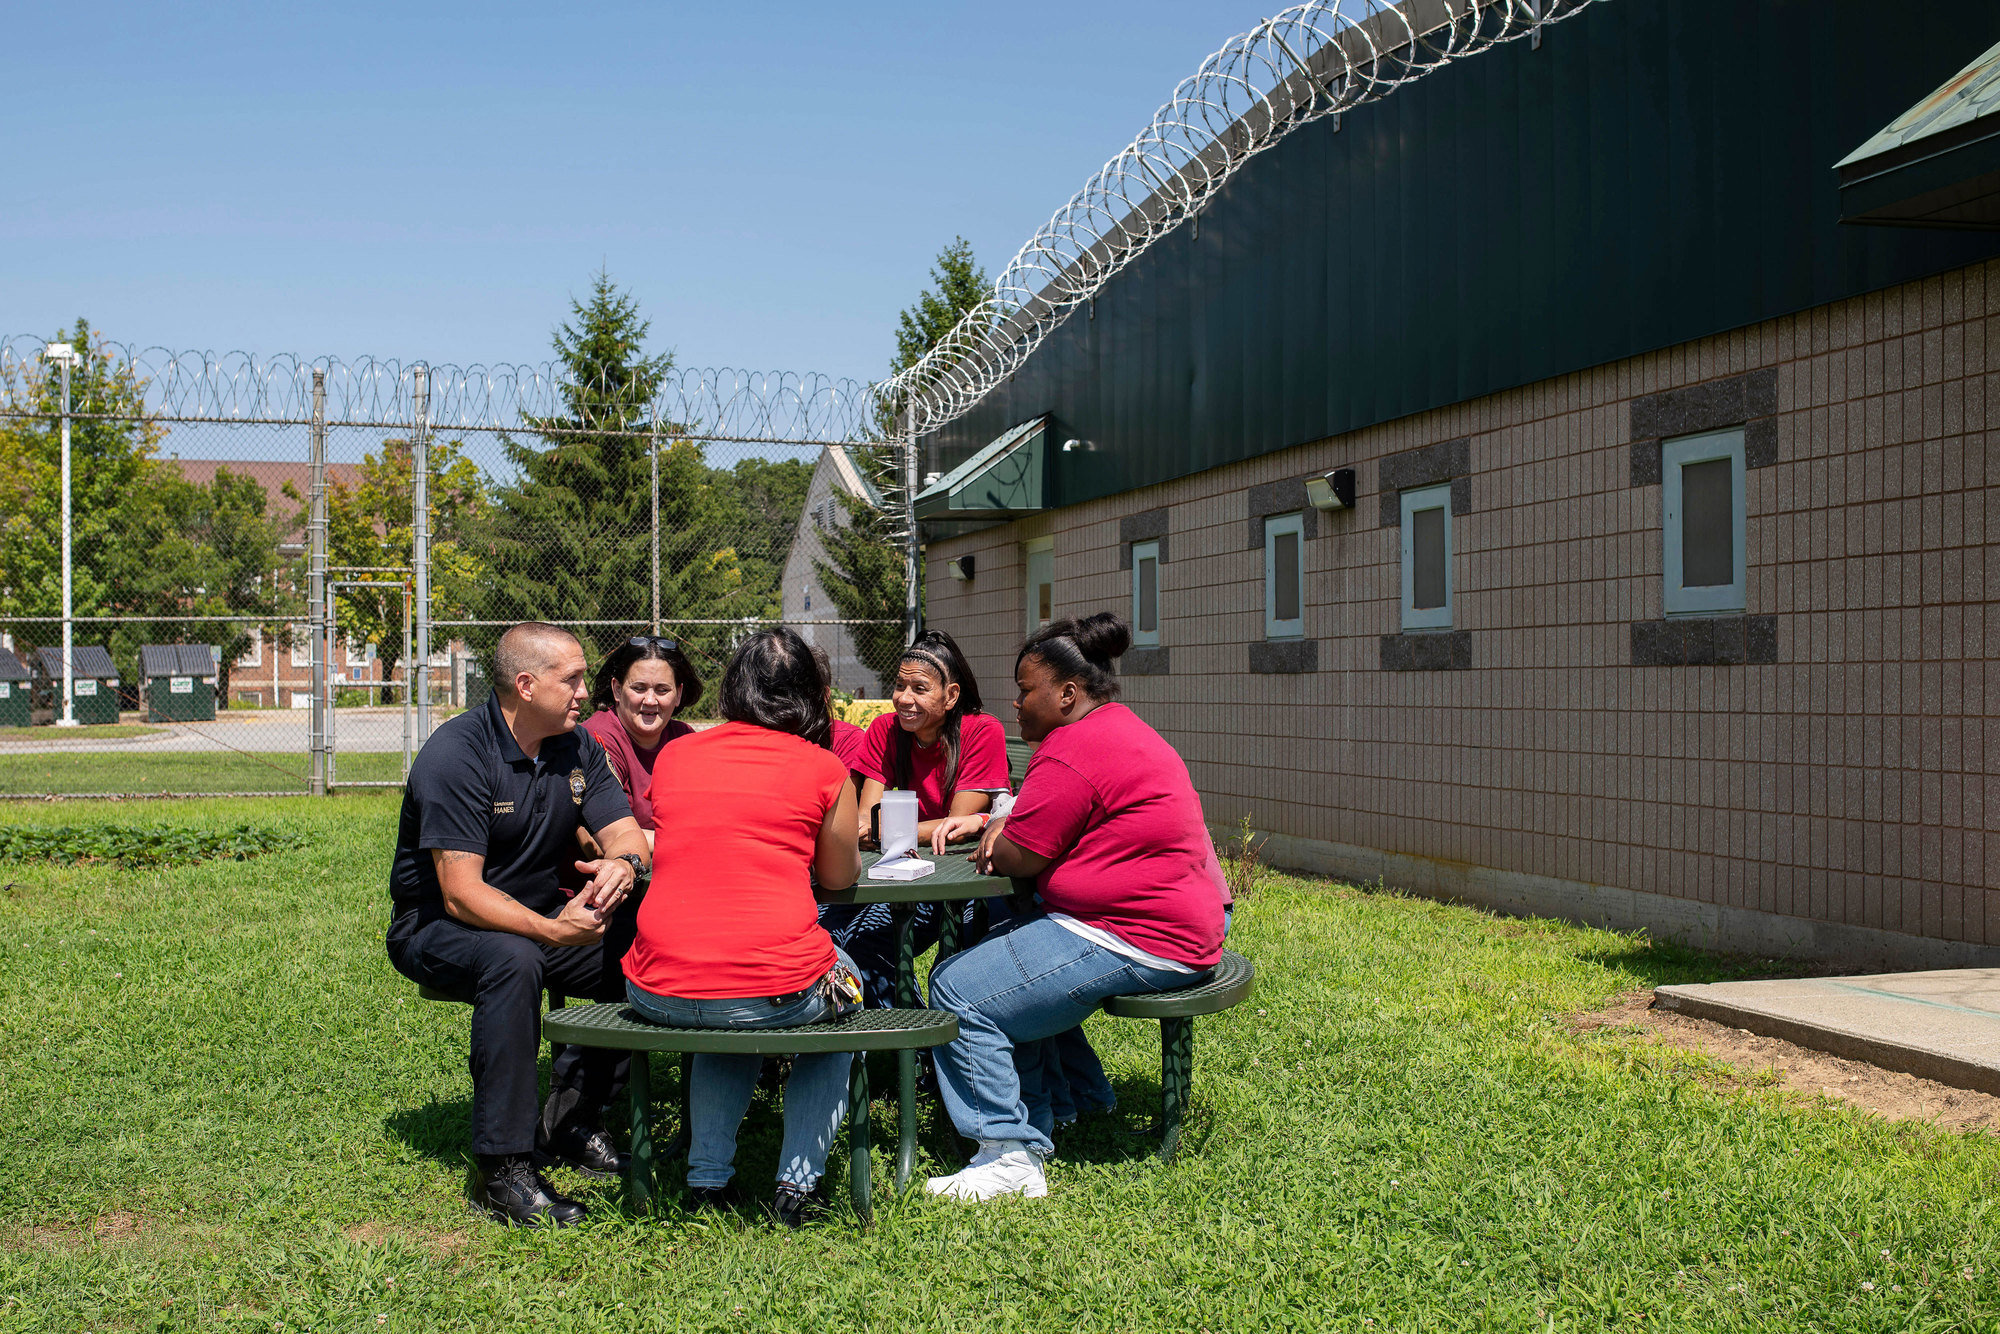 Lt. Russell Hanes, left, and counselor Colleen McClay, in bright red at center, chat with women who are incarcerated at York Correctional Institution in Niantic, Conn., in August.